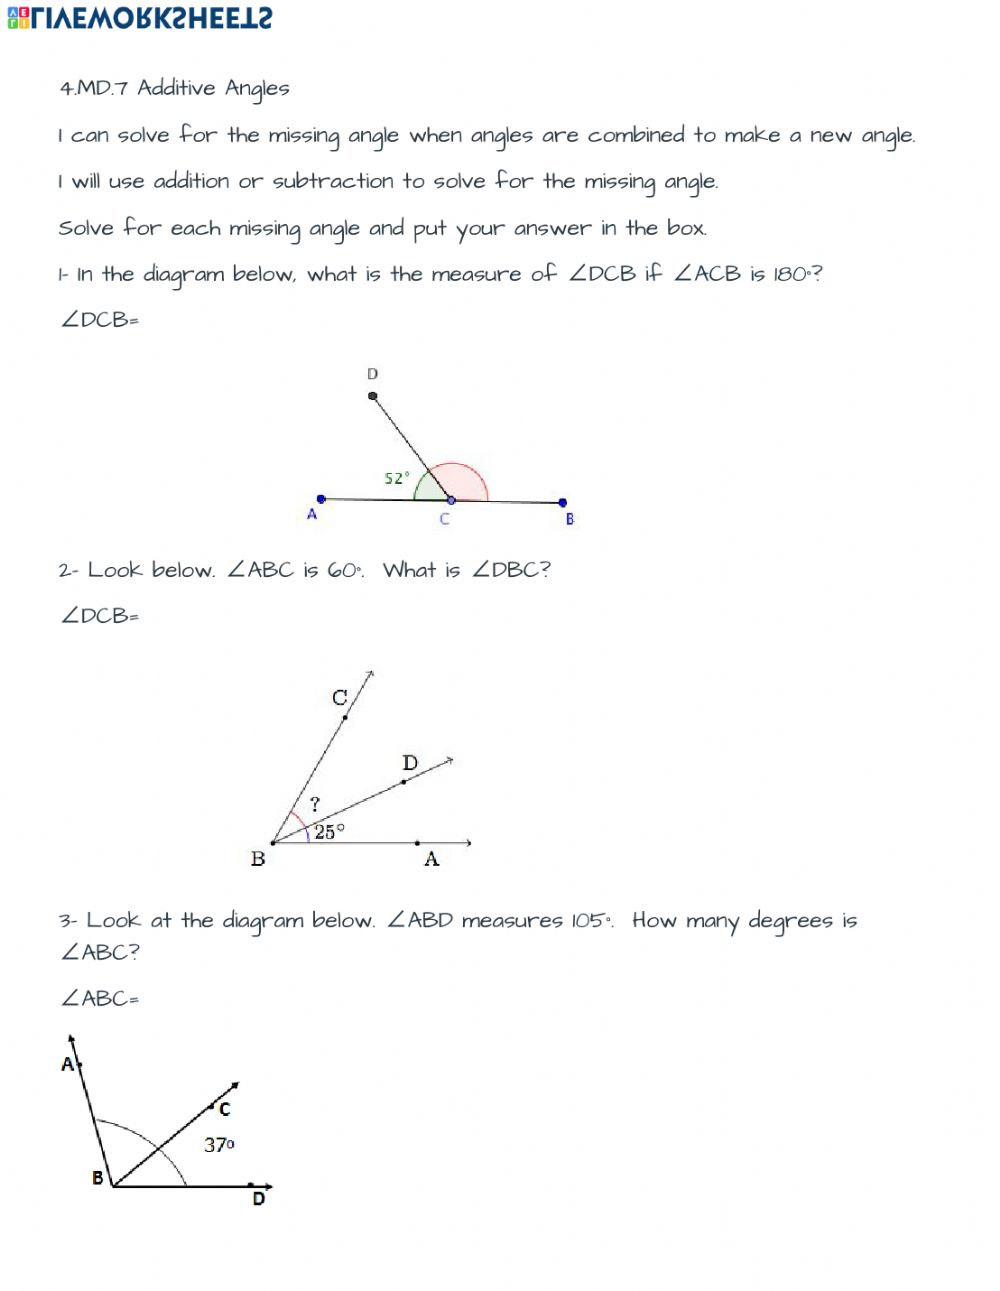 hight resolution of 4.MD.7 Additive angles worksheet